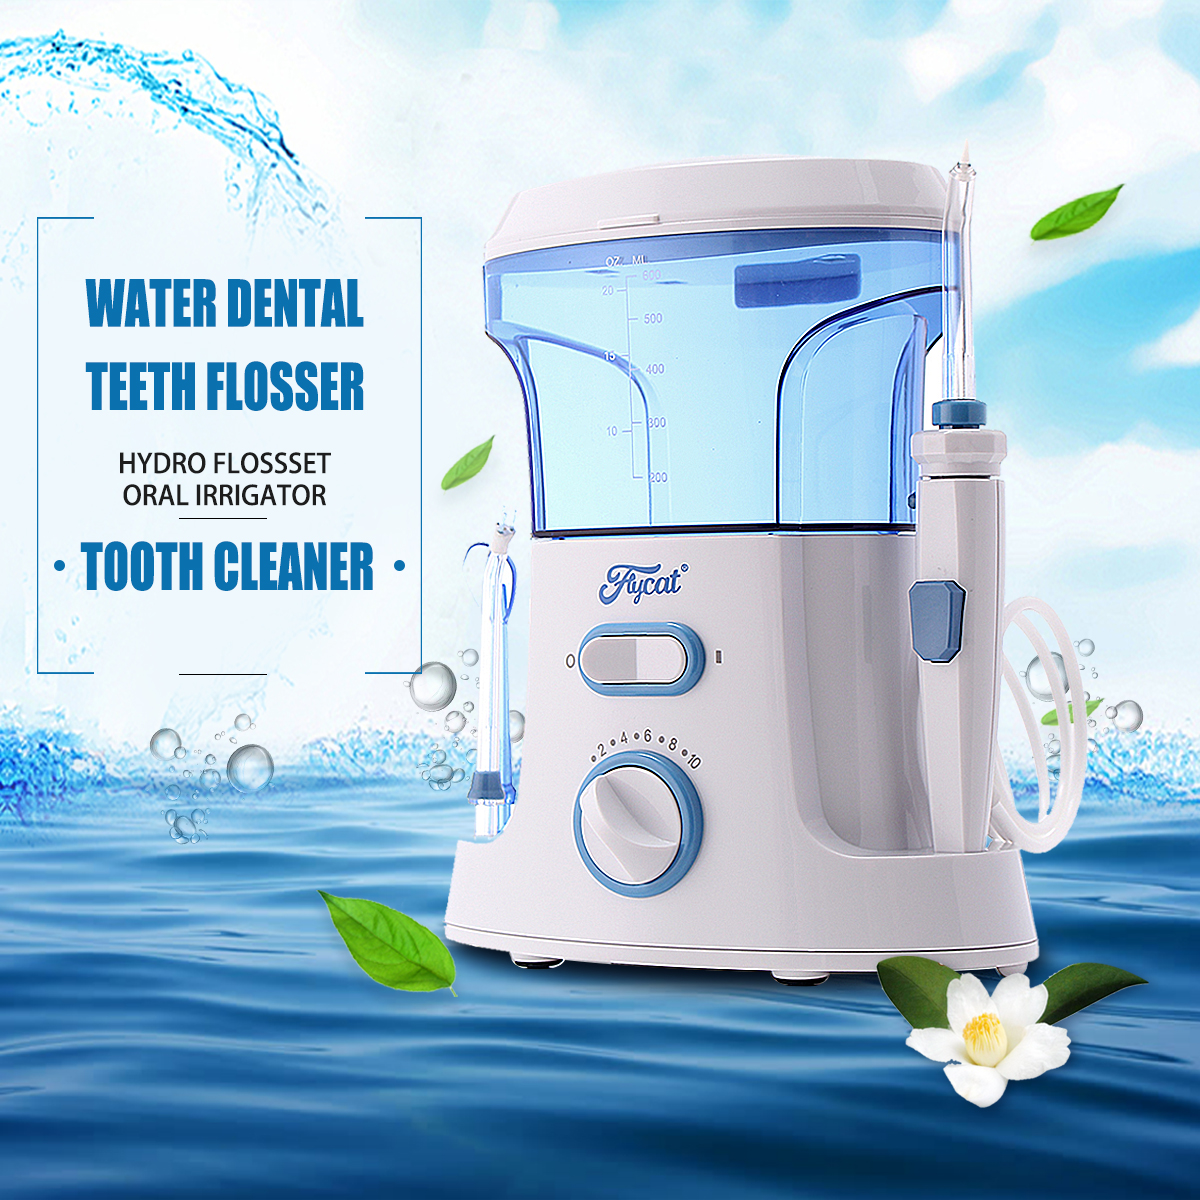 1Pcs Oral Irrigator Dental Flosser Water Dental Floss Water Irrigator Tooth Pick Dental Water Jet Oral Teeth Care 600ml 100pcs water flosser flycat fc168 oral irrigator 600ml tank 8pcs jet tips dental flosser power water jet protable oral deep